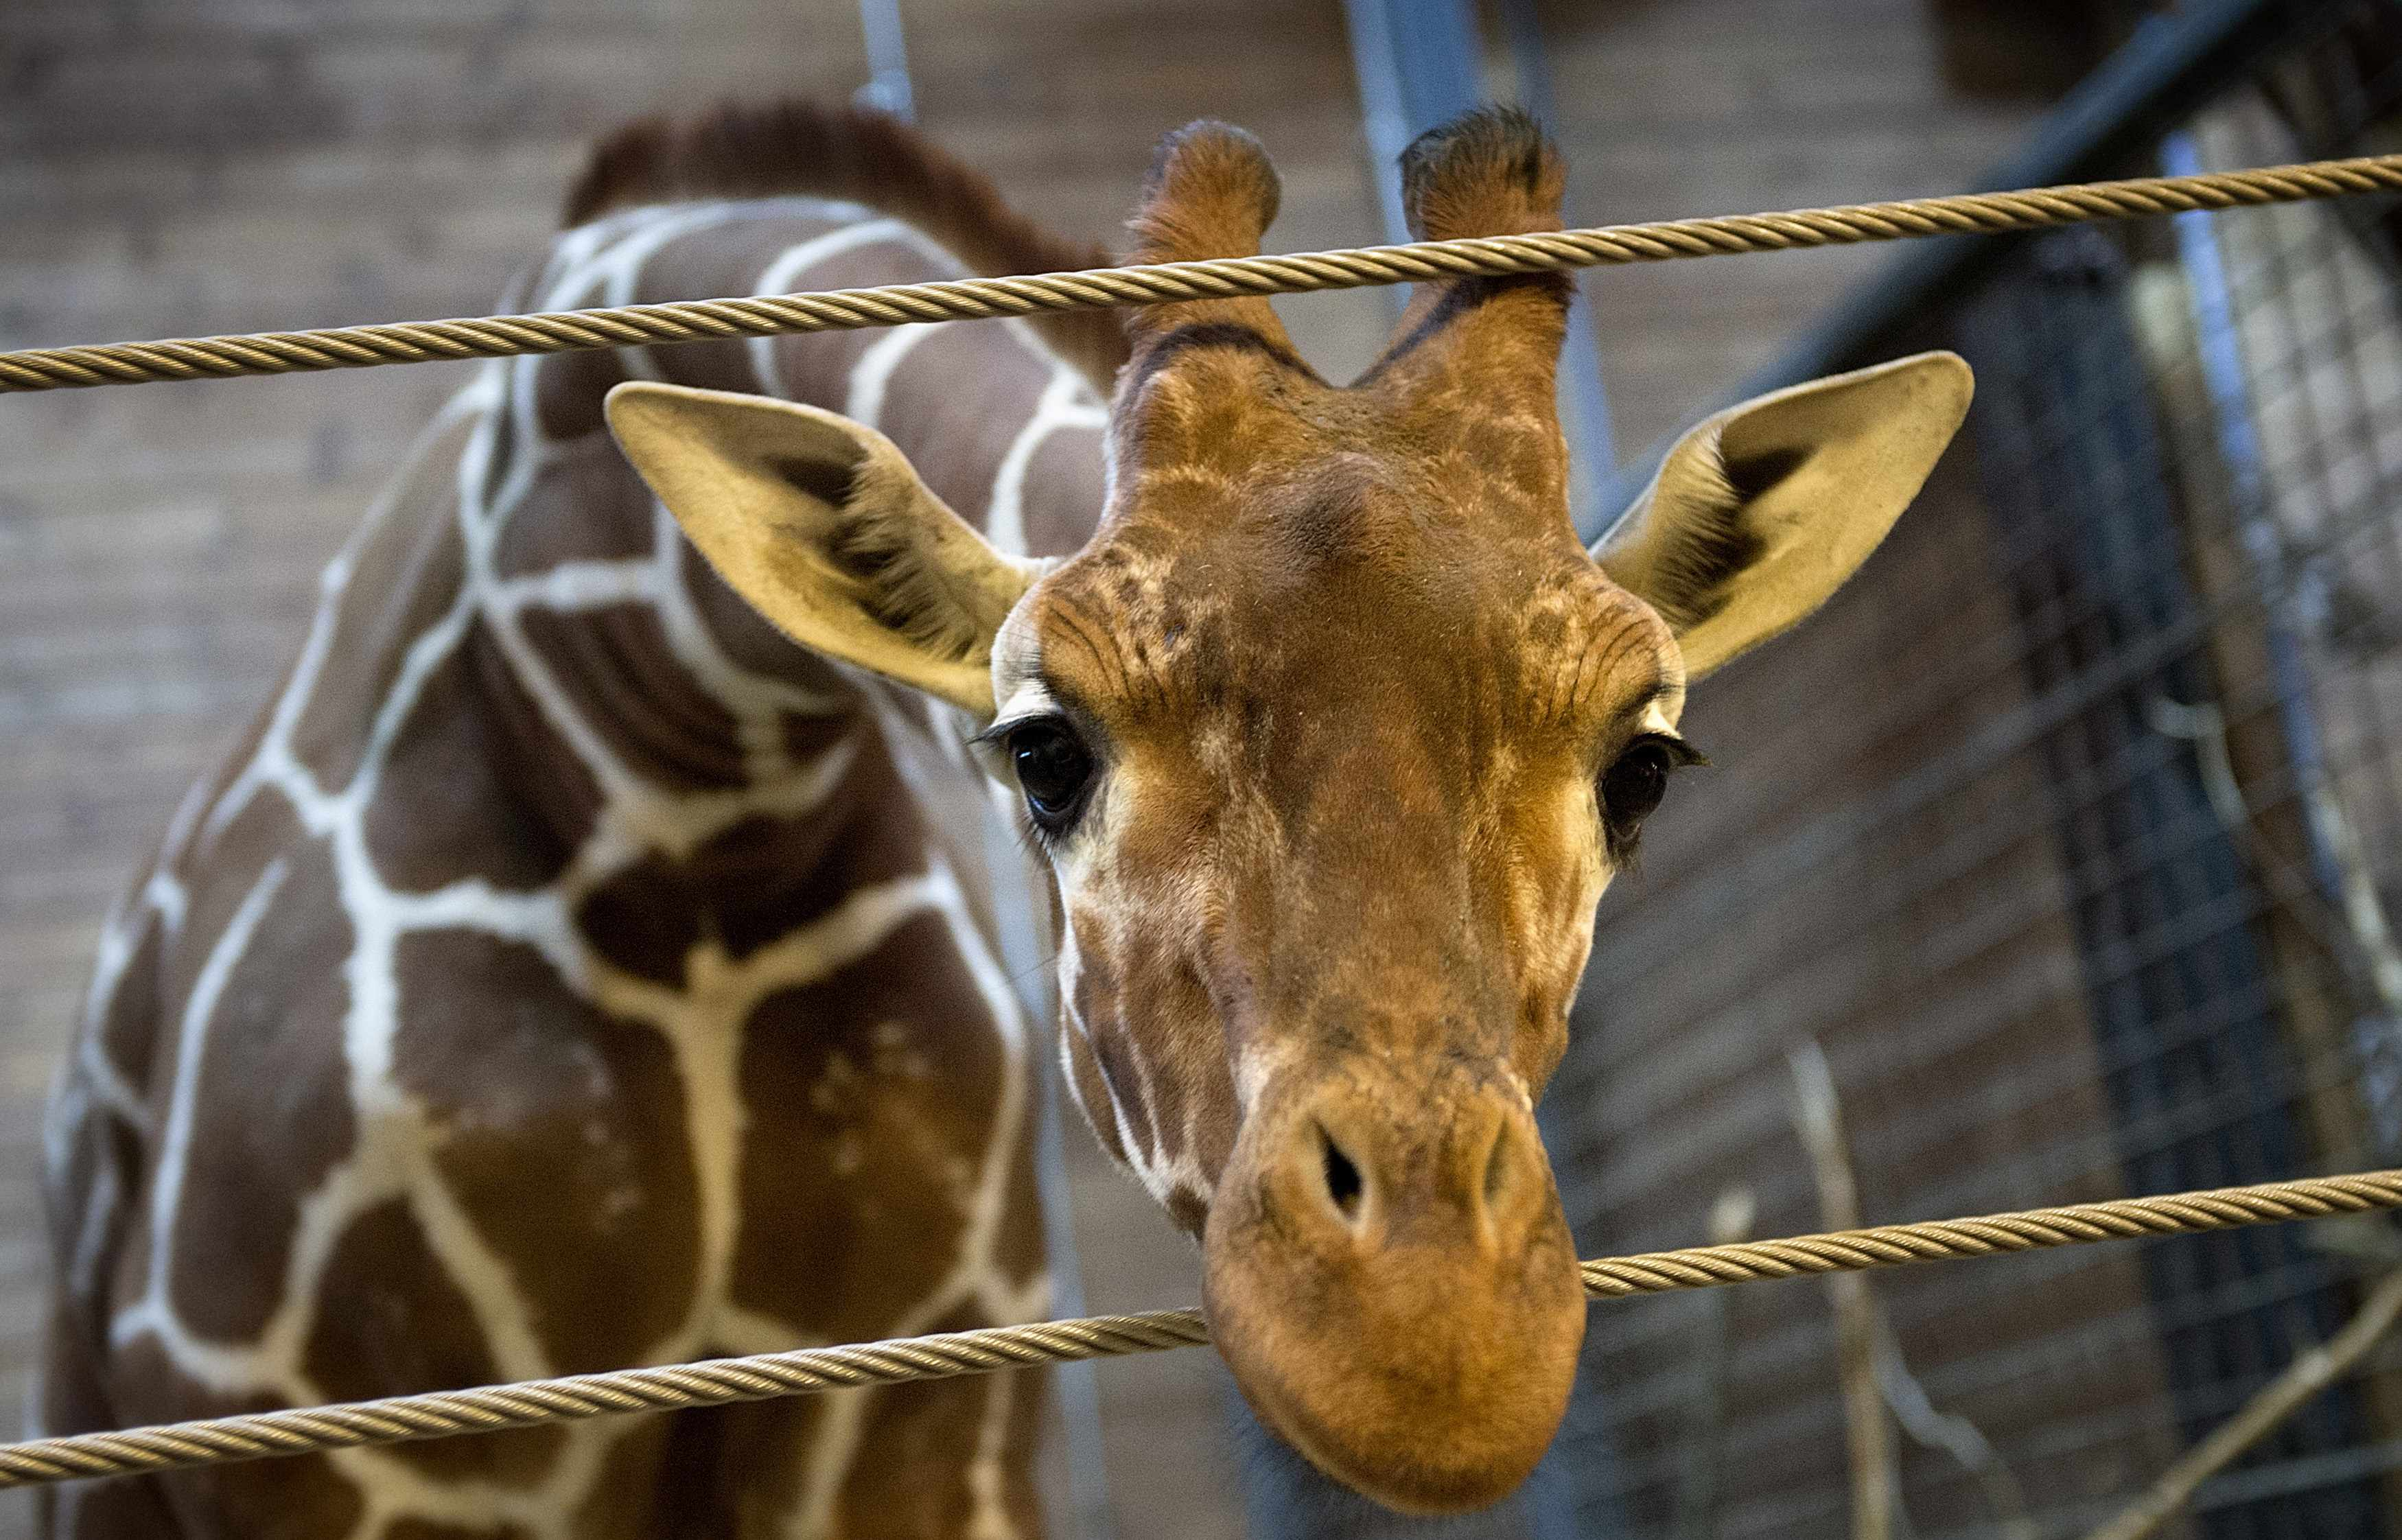 Marius the giraffe is pictured in Copenhagen Zoo February 7, 2014. The Copenhagen Zoo went ahead with a plan to shoot and dismember a healthy giraffe on Sunday and feed the 18-month-old animal's carcass to lions - an action the zoo said was in line with anti-inbreeding rules meant to ensure a healthy giraffe population. The giraffe, named Marius, was shot in the head and then cut apart in view of children, according to a video of the incident released by the Denmark-based production company Localize. The zoo's plans had sparked an outcry from animal rights activists. A British zoo had offered to give Marius a home and even started an online petition to save the giraffe, gathering more than 25,000 signatures. Picture taken February 7, 2014. REUTERS/Keld Navntoft/Scanpix Denmark (DENMARK - Tags: ANIMALS SOCIETY) ATTENTION EDITORS - THIS IMAGE HAS BEEN SUPPLIED BY A THIRD PARTY. IT IS DISTRIBUTED, EXACTLY AS RECEIVED BY REUTERS, AS A SERVICE TO CLIENTS. DENMARK OUT. NO COMMERCIAL OR EDITORIAL SALES IN DENMARK